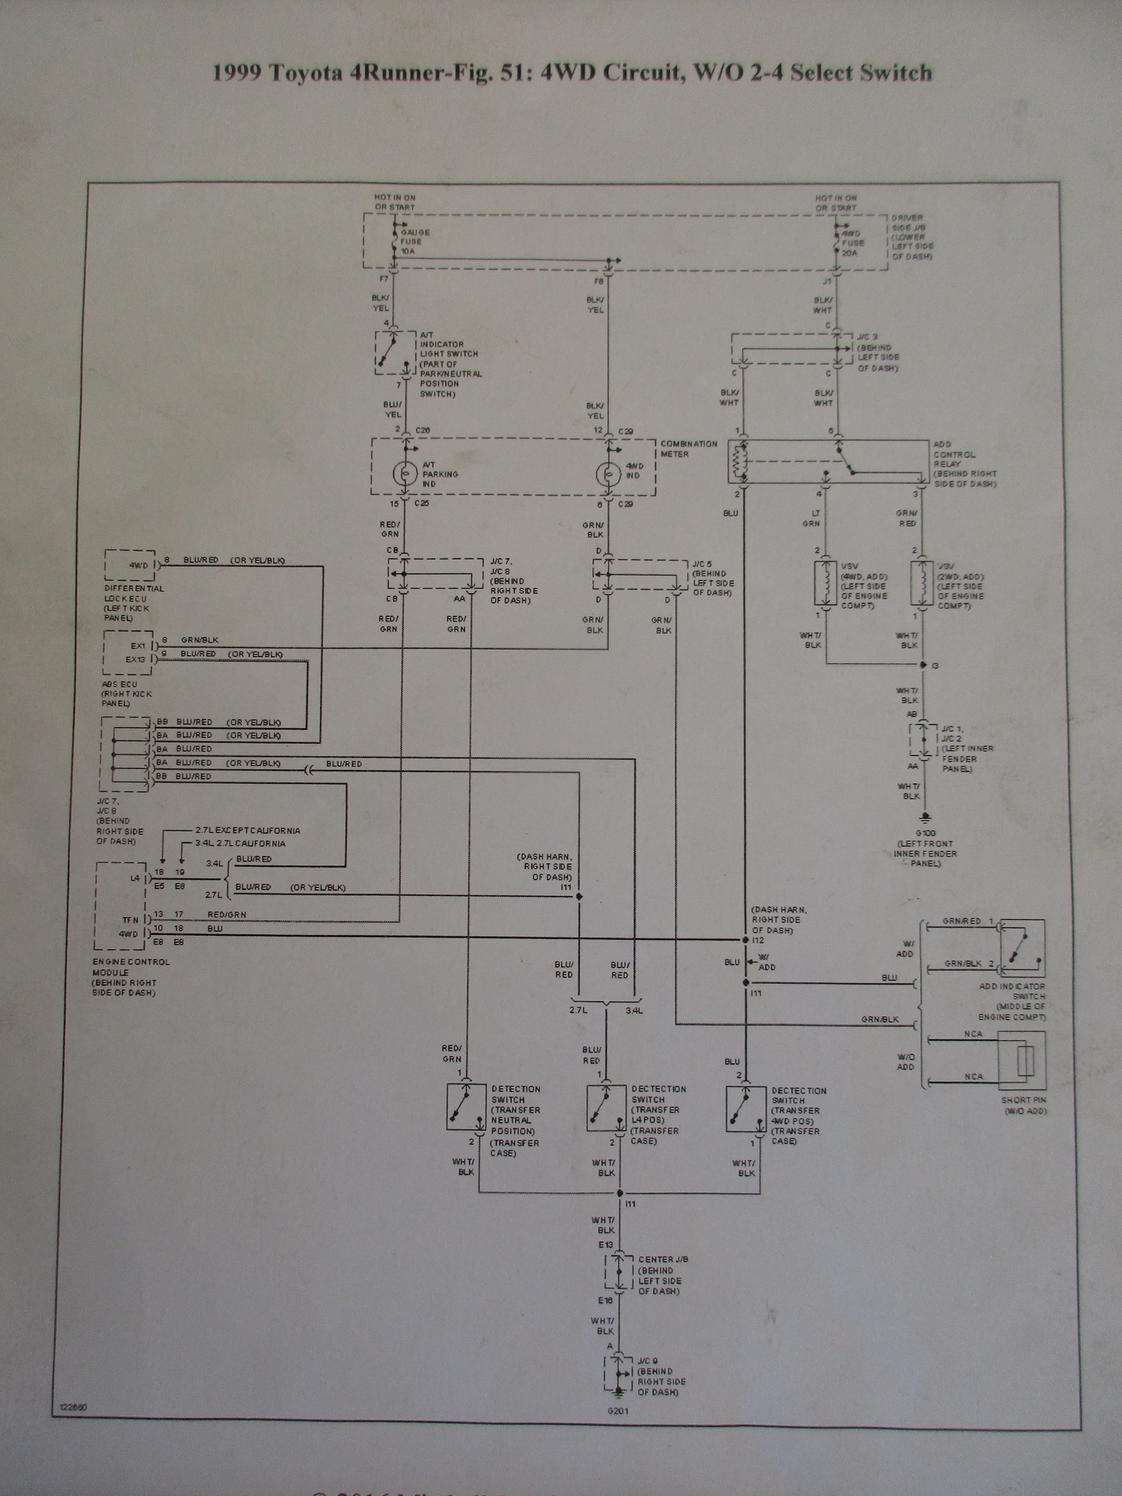 1999 4runner 4wd Circuit Diagram W  O Select Switch - Toyota 4runner Forum